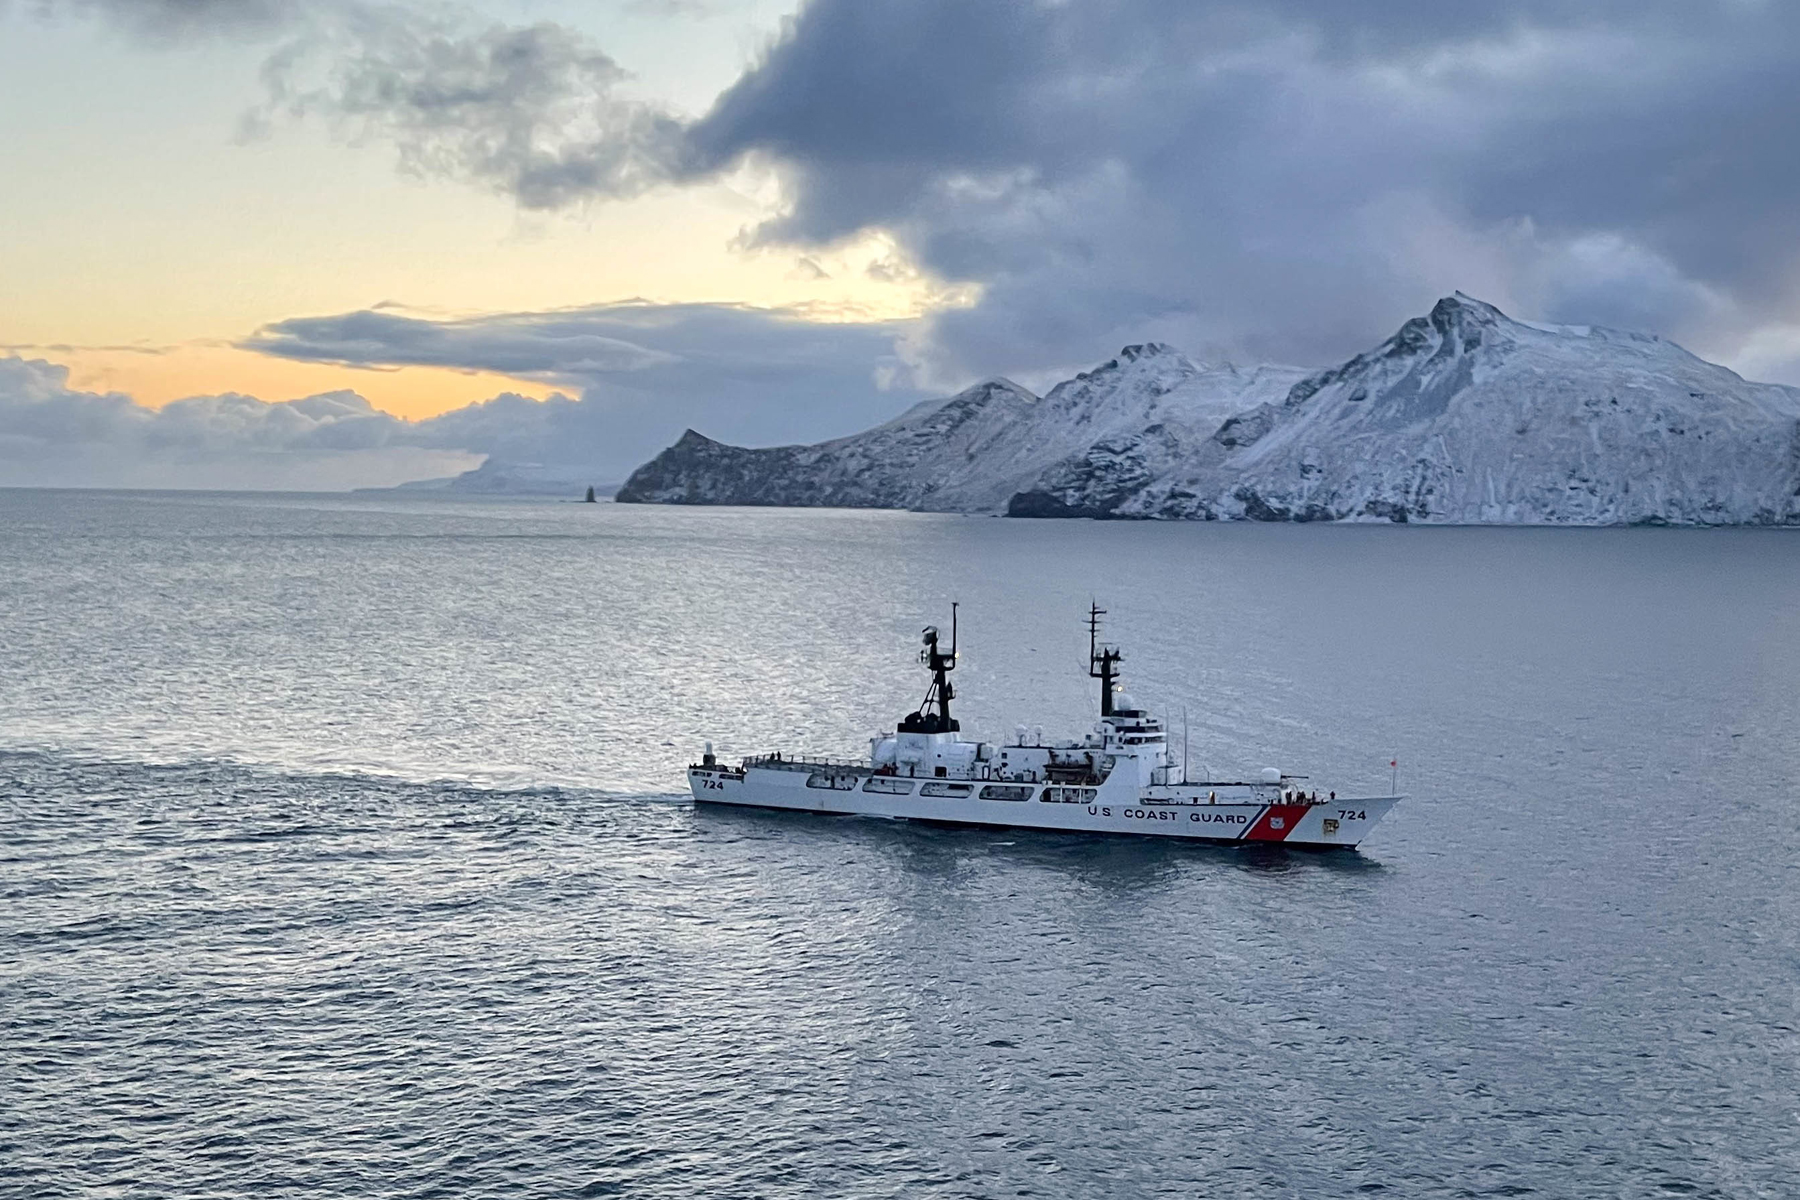 U.S Coast Guard Cutter Douglas Munro • Decommissioned After 49 Years of Service • Alaska Apr 24 2021